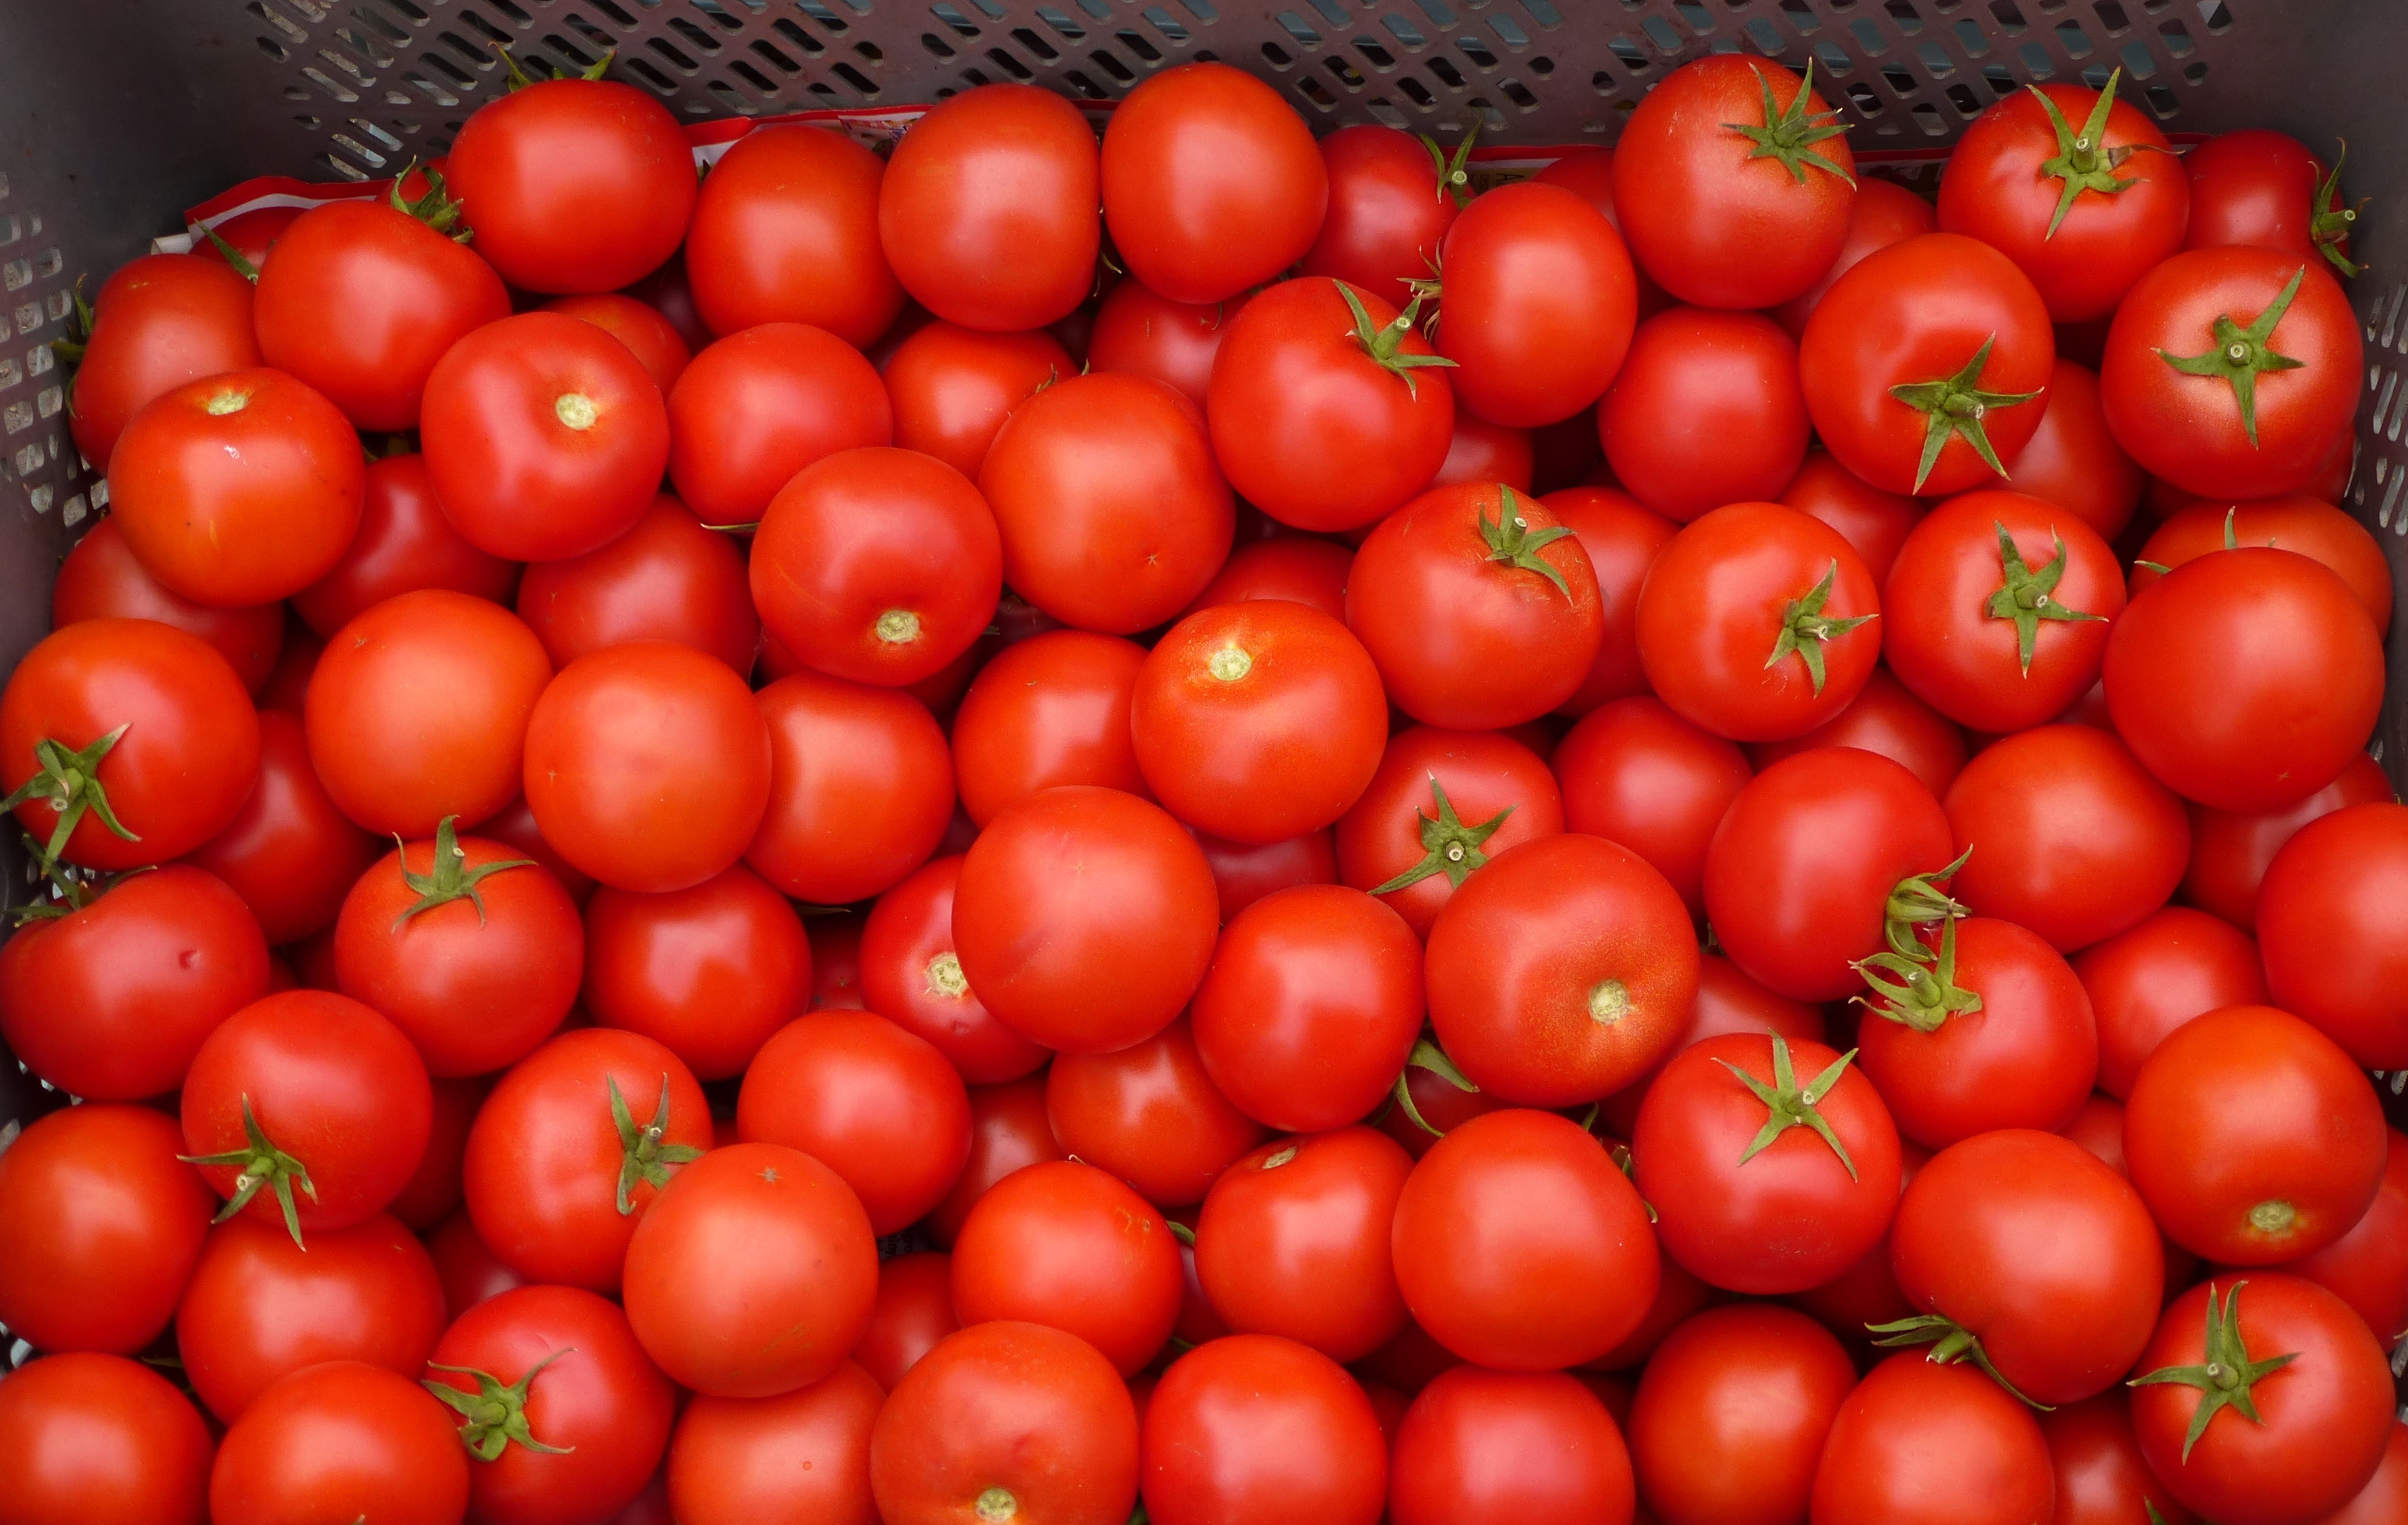 Tomatoes 171 Why Evolution Is True